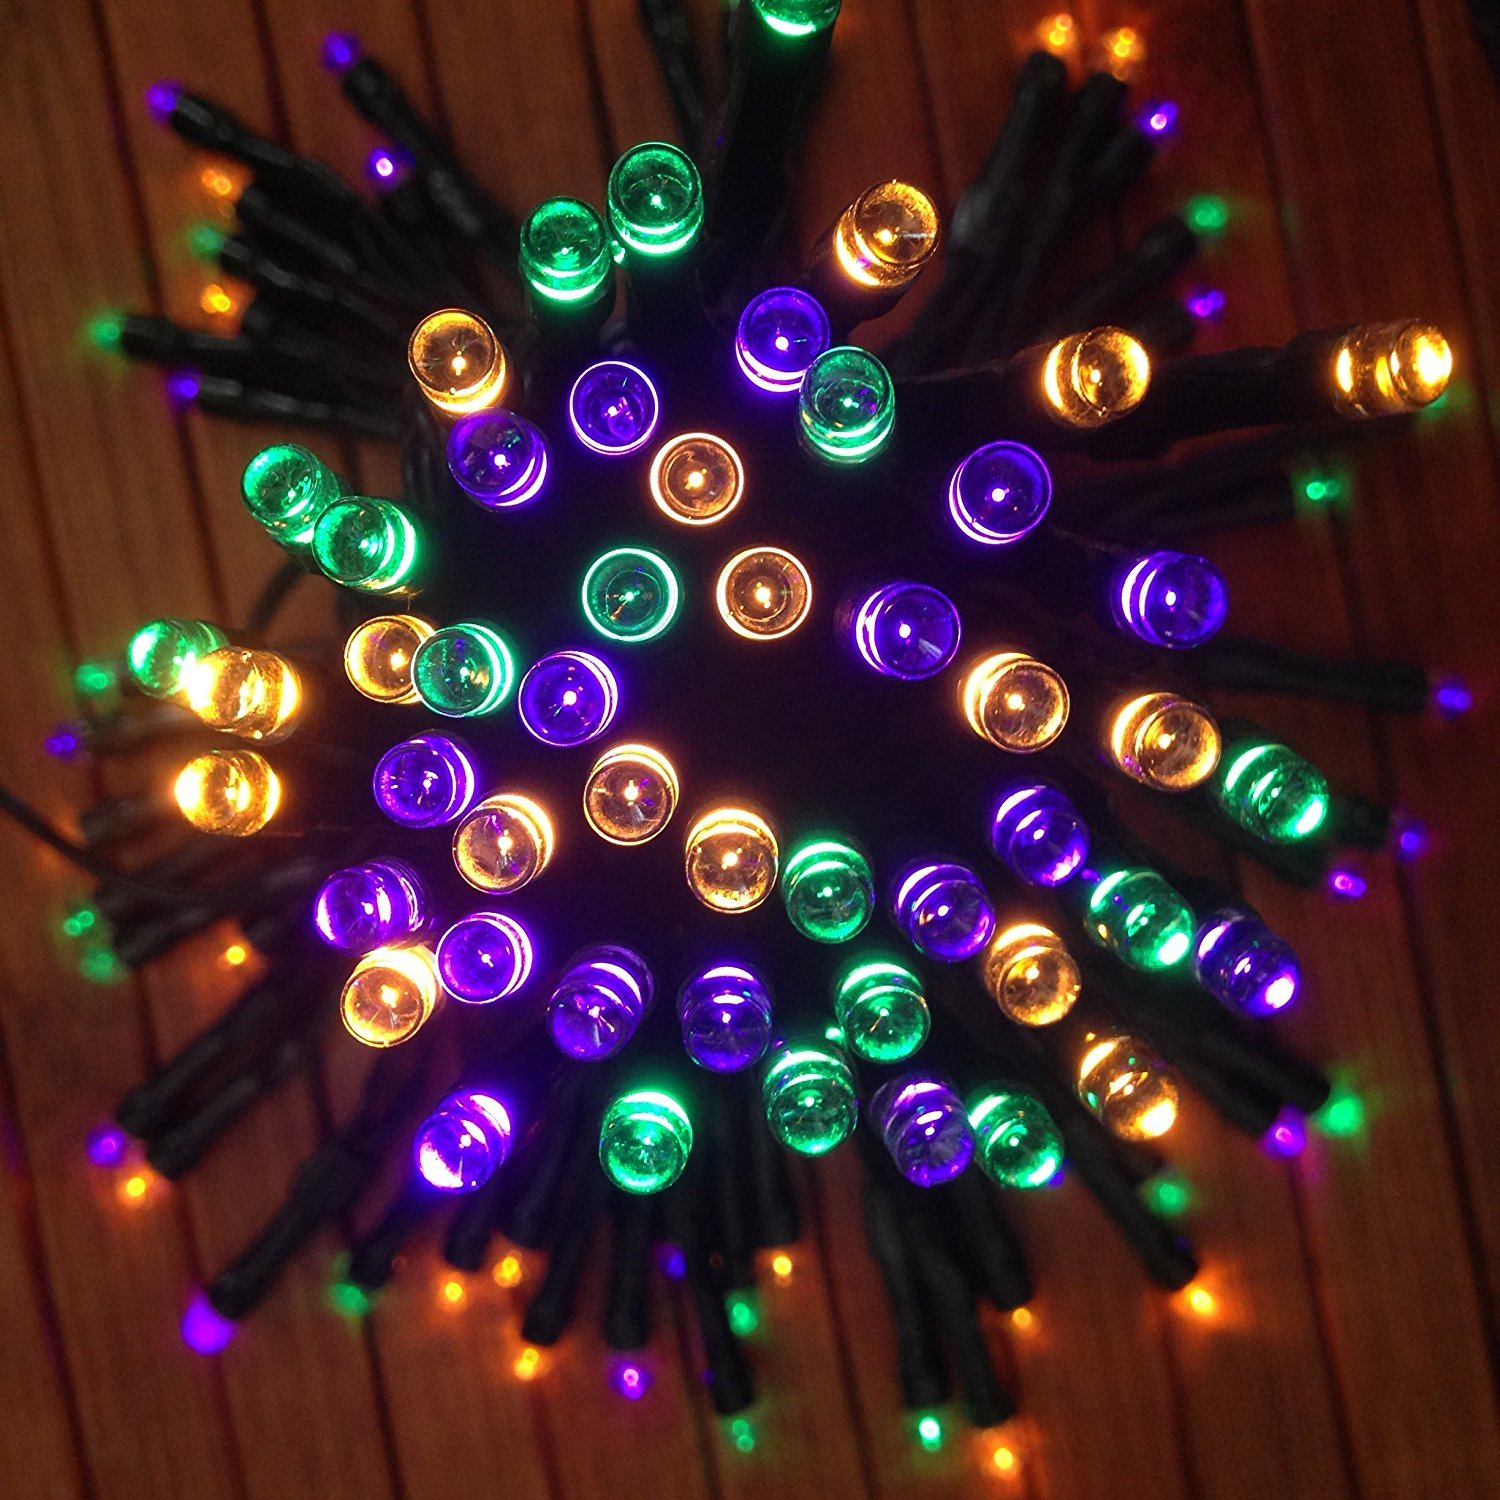 Multi Colored Solar String Lights in Orange Purple and Green, 100 Mini LED Set, extra long 13ft lead wire to reach Winter sun, Outdoor Waterproof Christmas decor for tree wrap, patio, fence